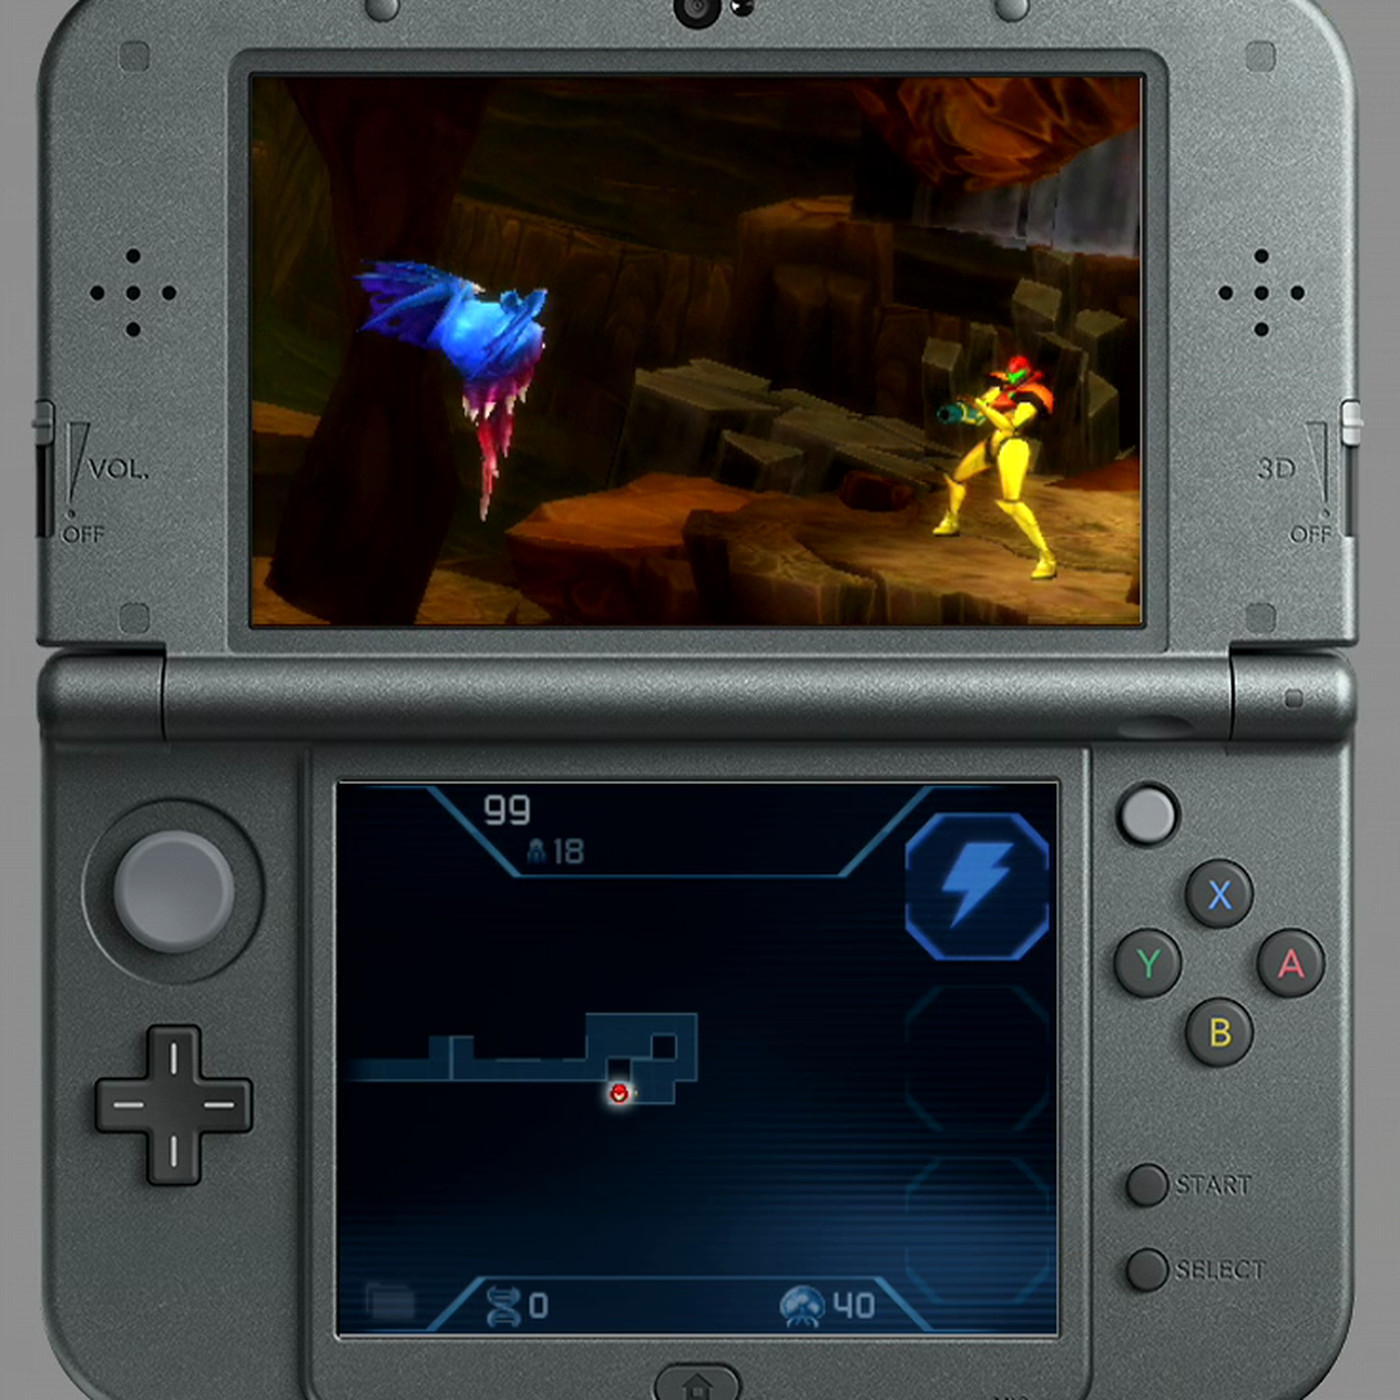 The Nintendo 3DS May Be On Way Out Update